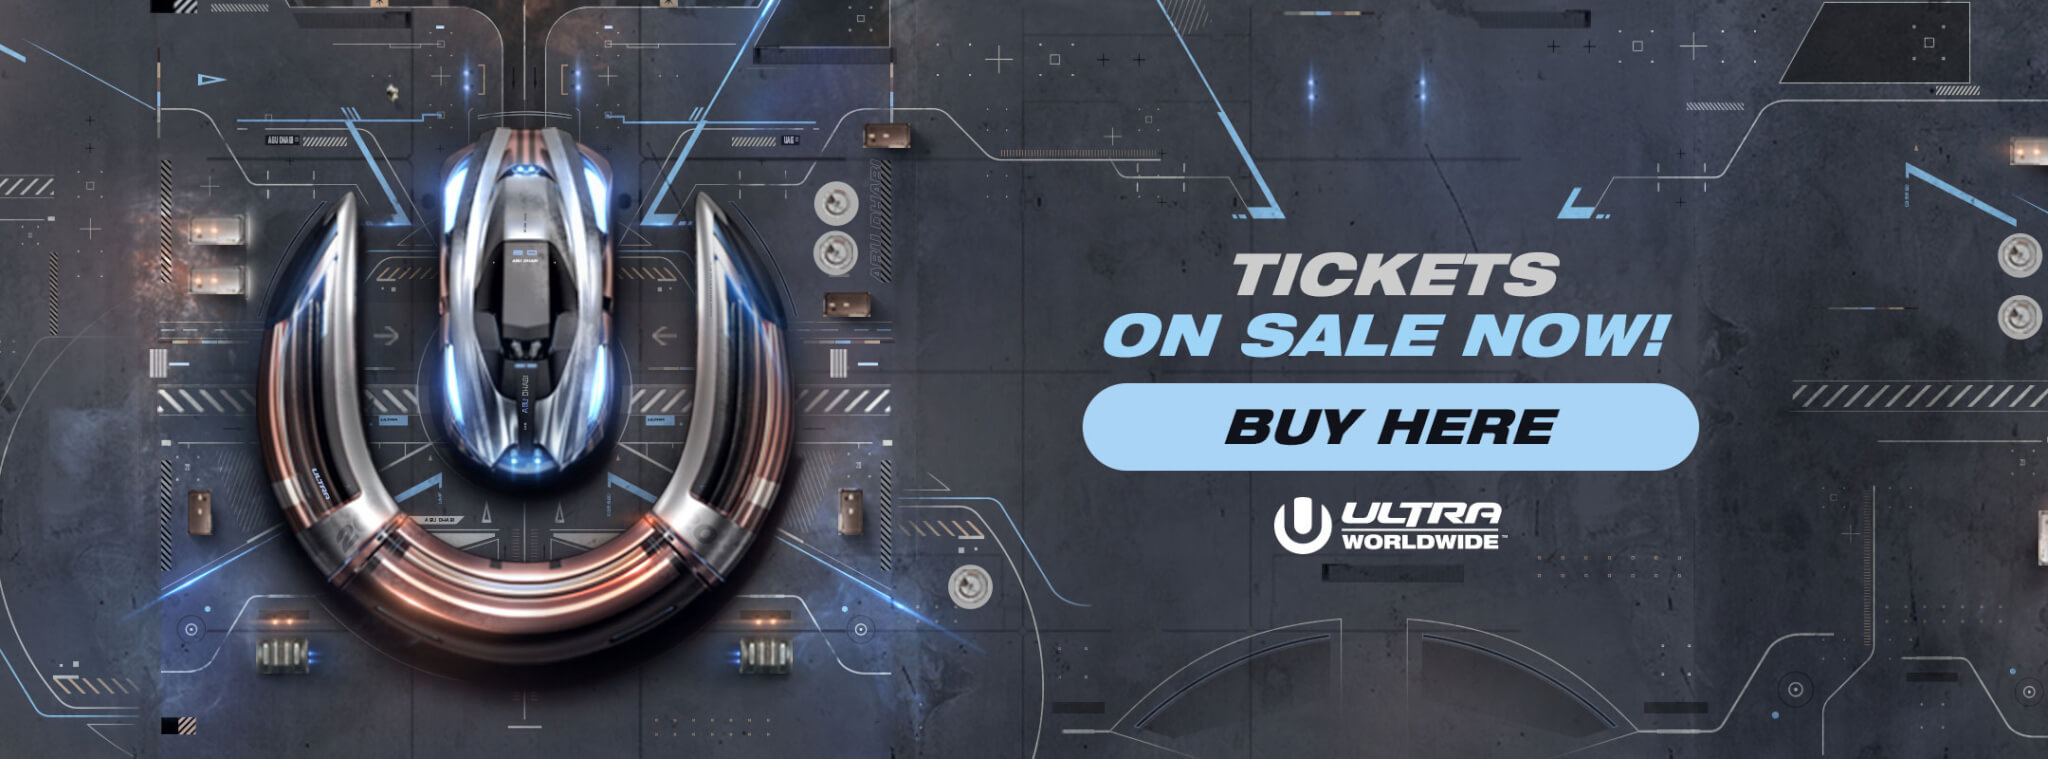 Buy Tickets for Ultra Abu Dhabi 2020